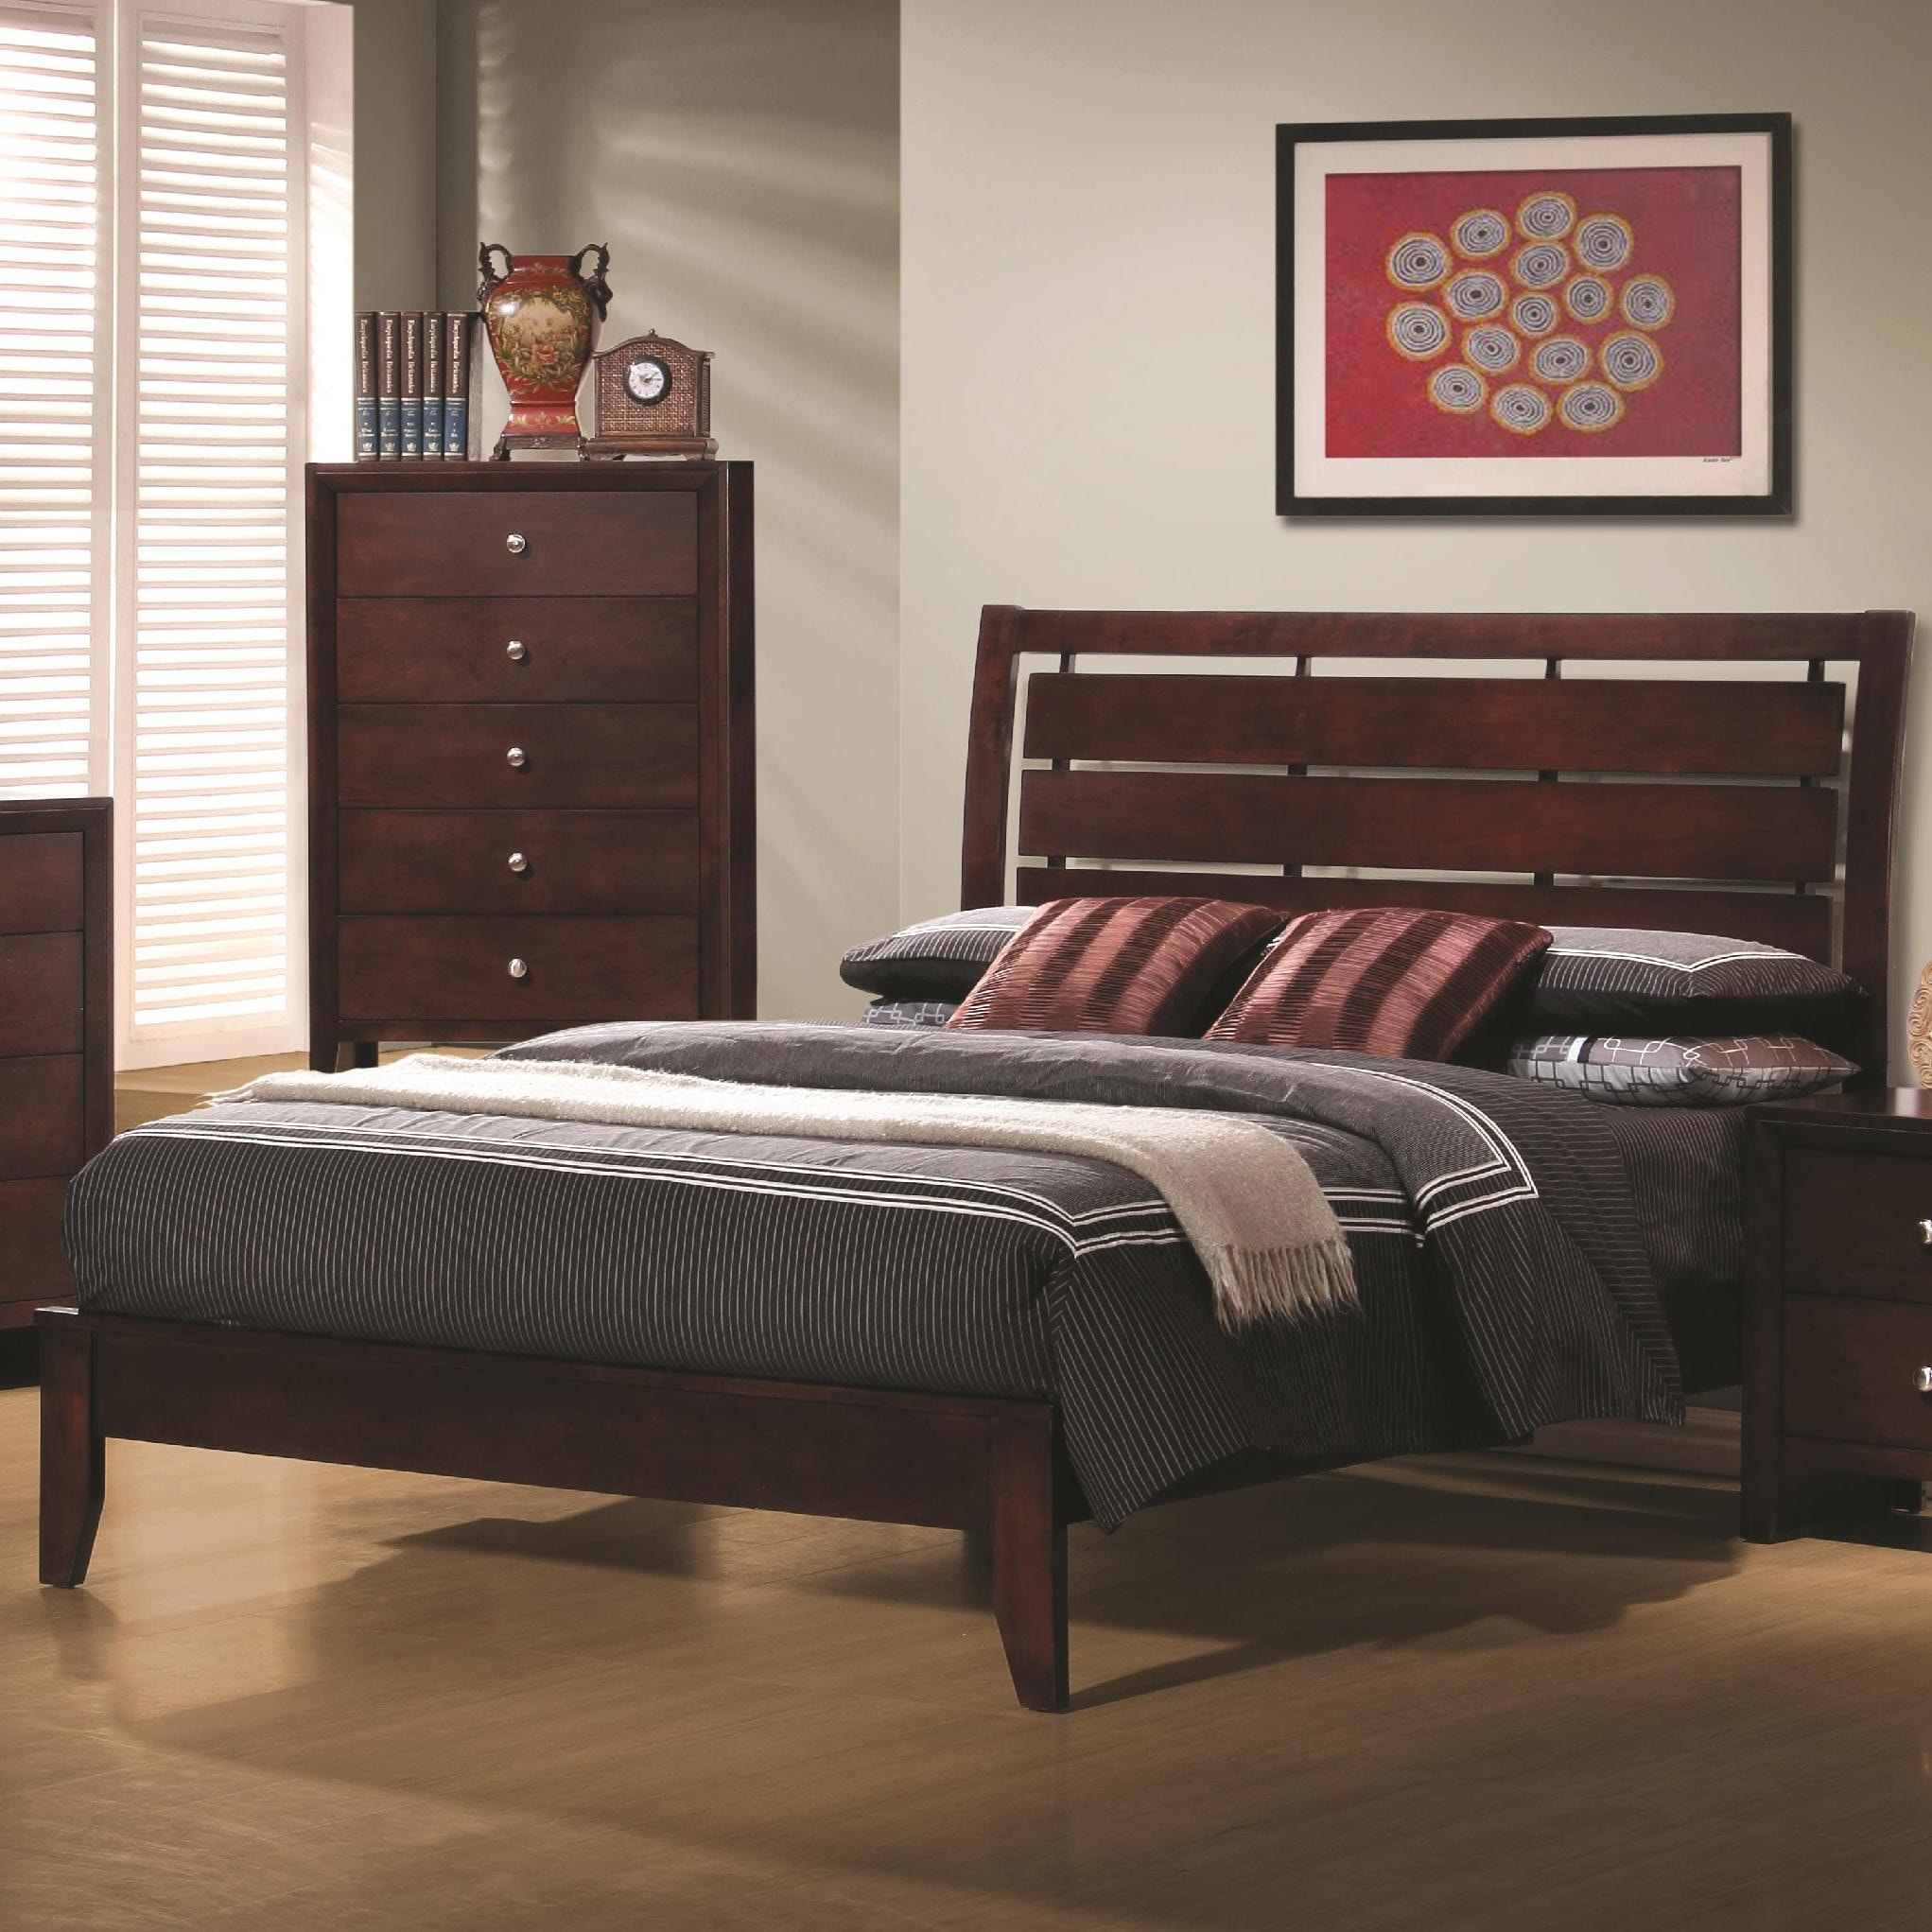 Coaster Bedroom Queen Bed 201971Q   China Towne Furniture   Solvay